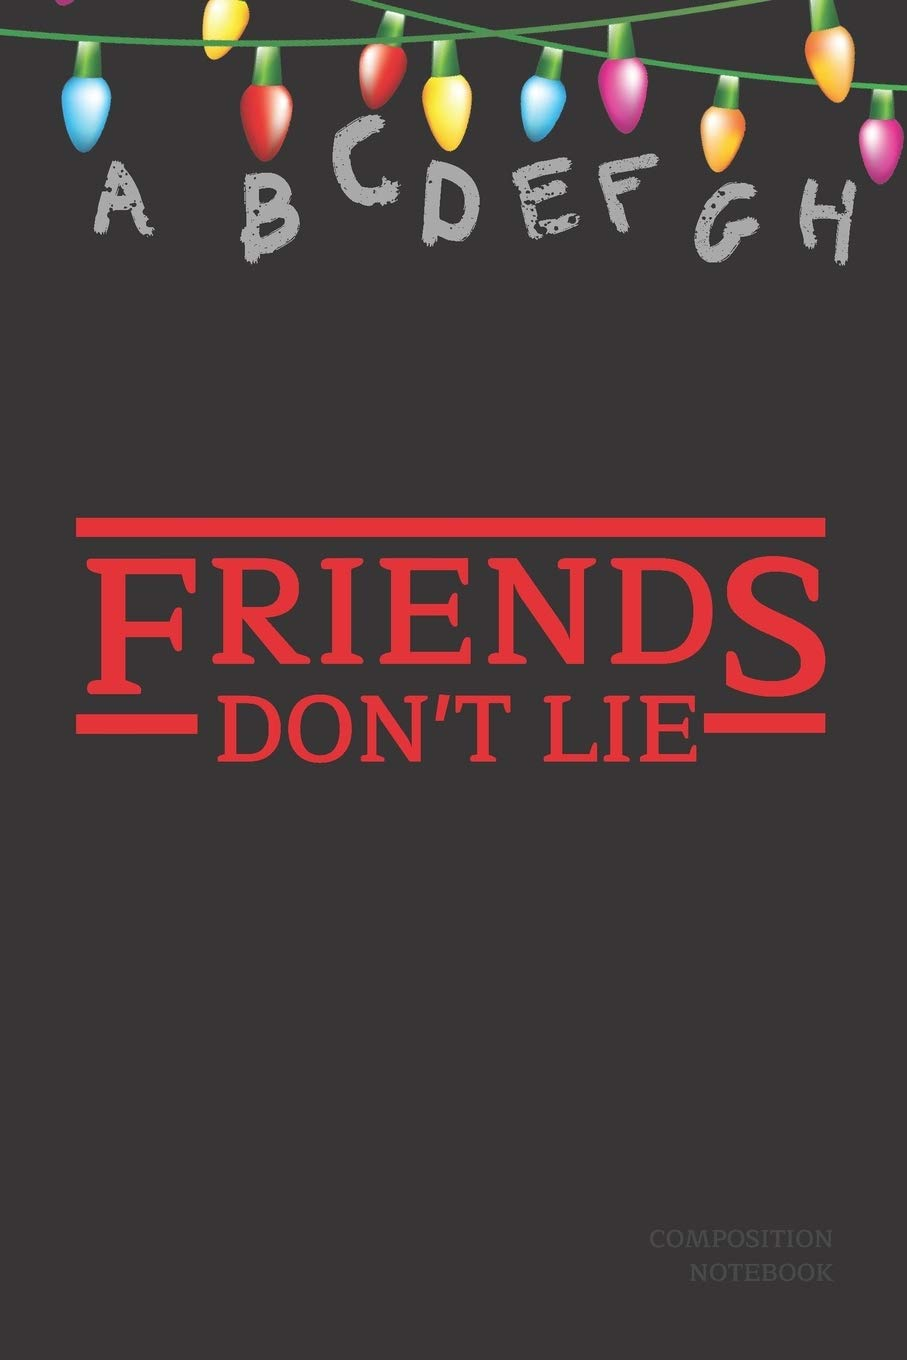 Friends Don T Lie Composition Book Stranger Things Quotes Eleven Alphabet Light Up Sign Cover Book 6x9 120 Pages Wide Ruled Paper Christmas Gifts 3 Stranger Things Composition Book Amazon Co Uk Press Eleven